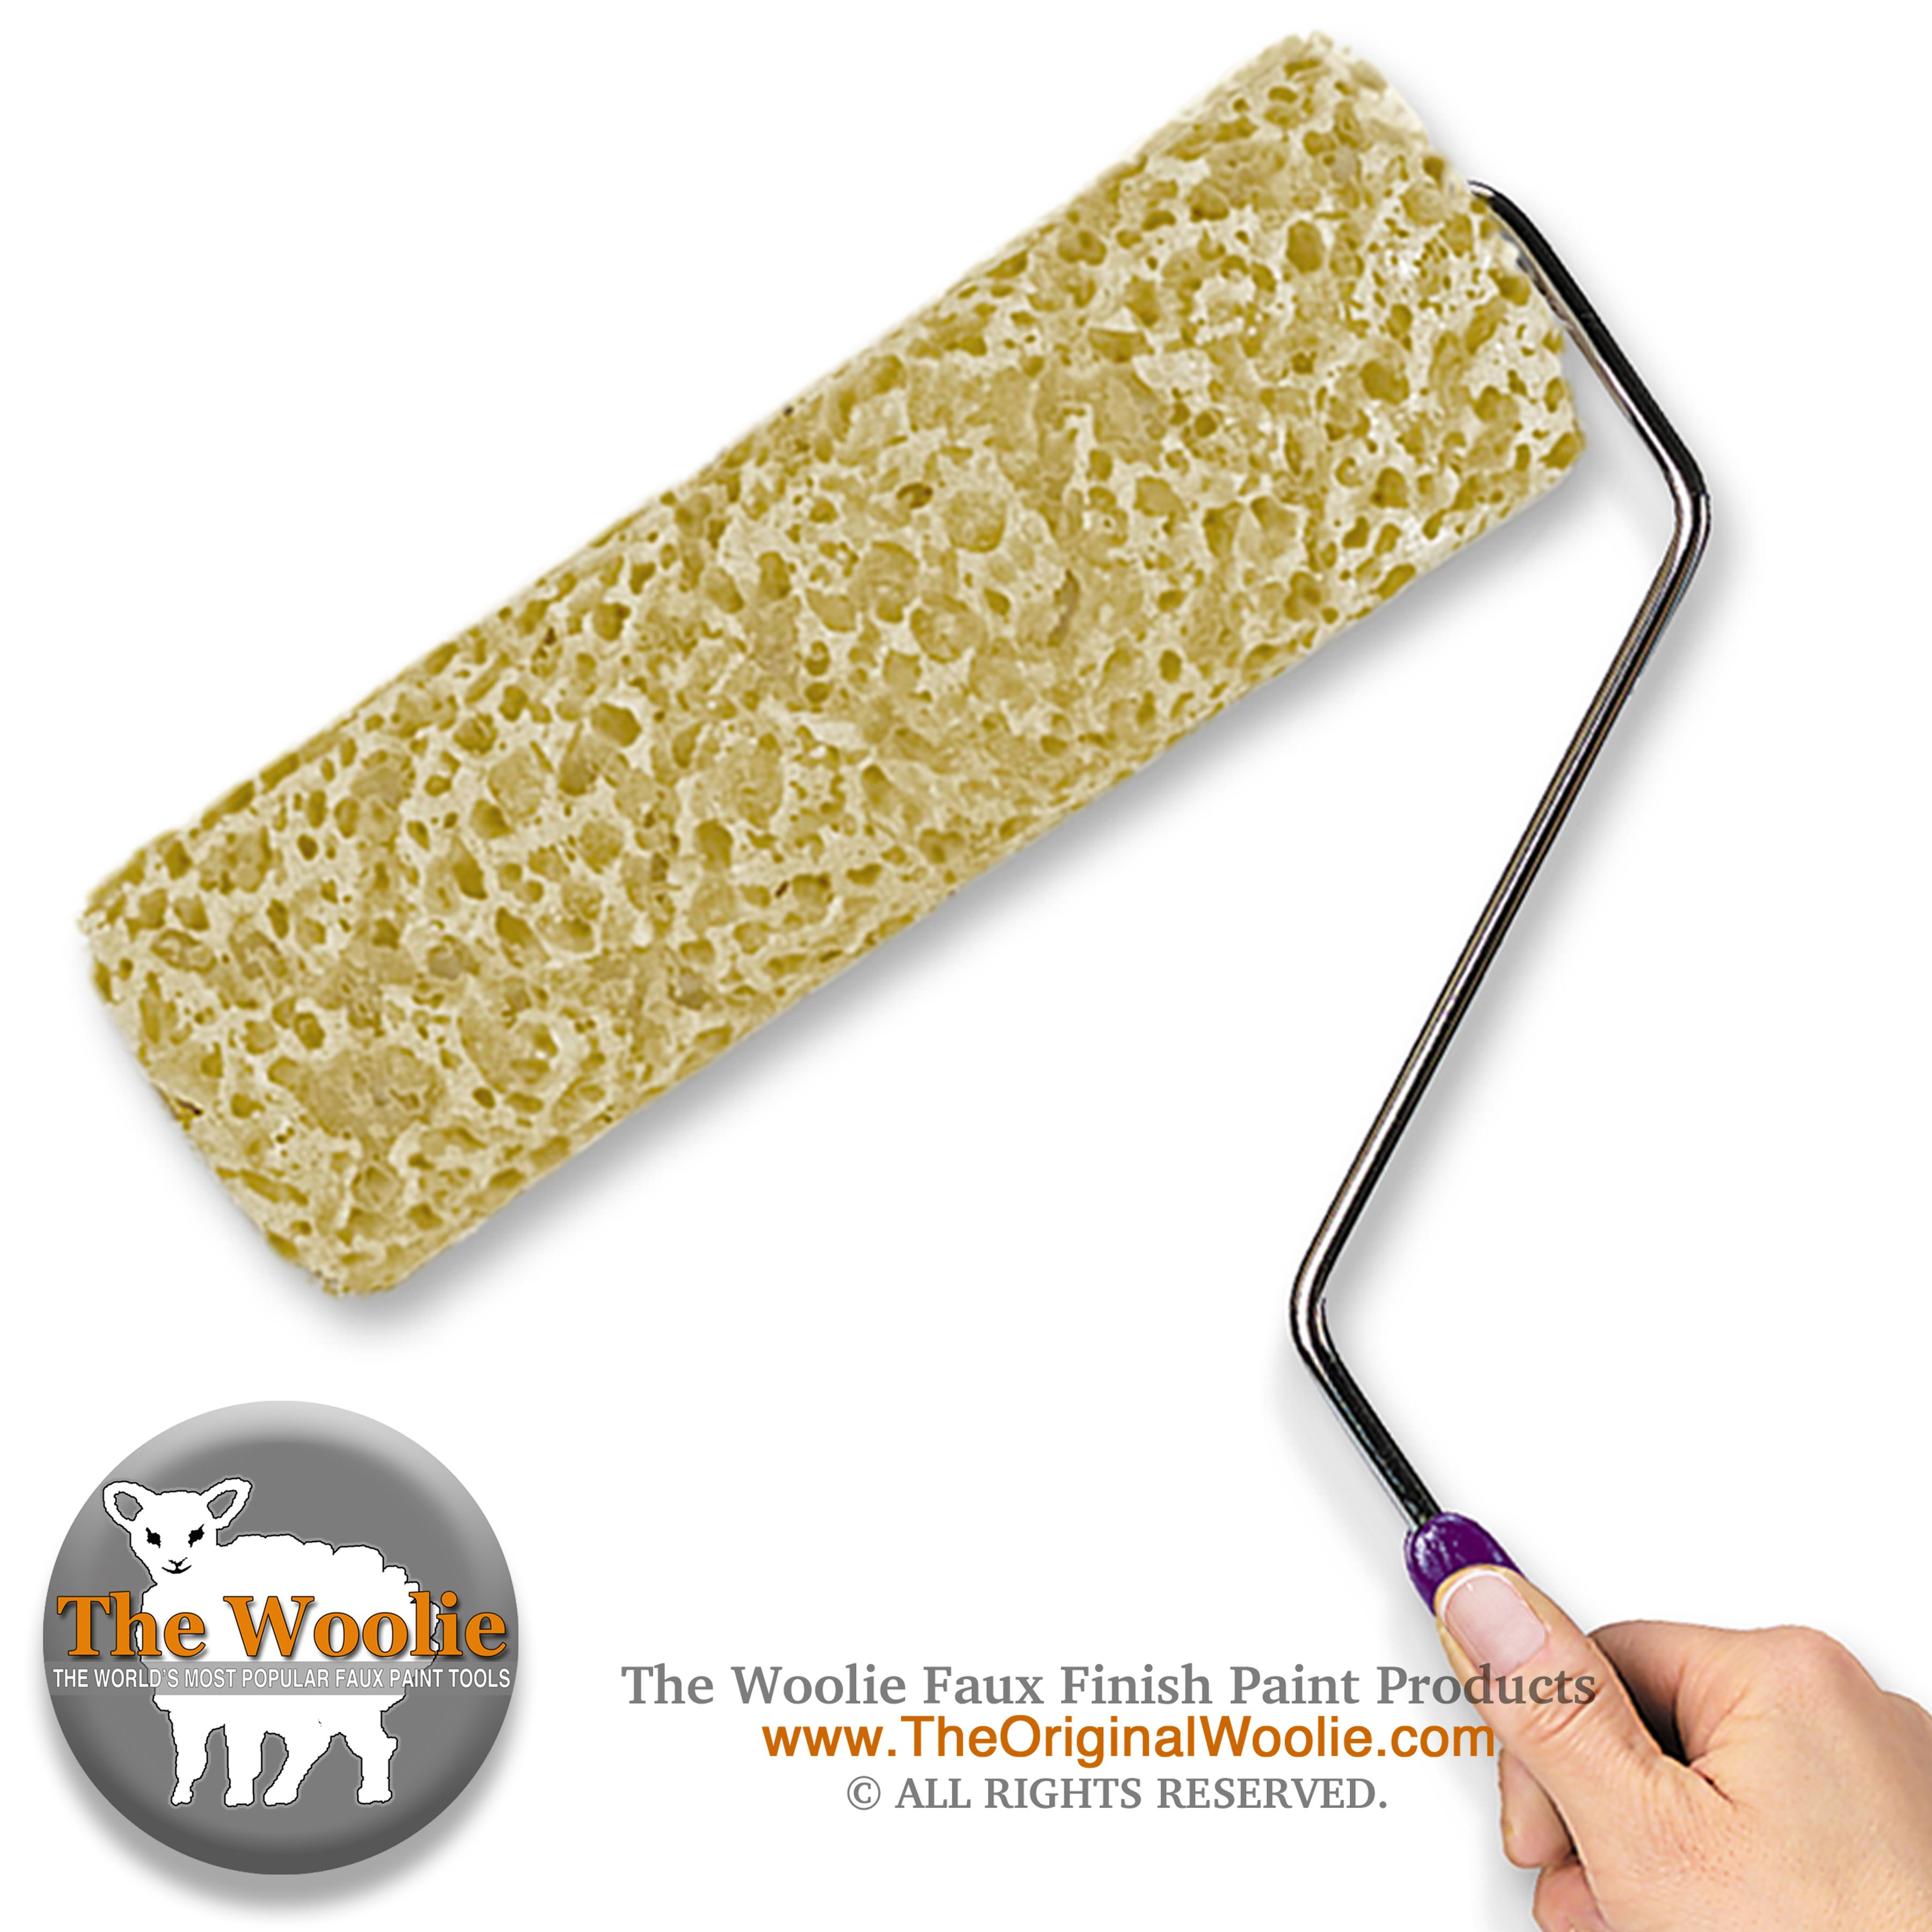 The Woolie Where To Buy The Woolie Faux Painting Tool The Woolie Com The Woolie Company The Woolie H Faux Painting Techniques Faux Painting Sponge Painting